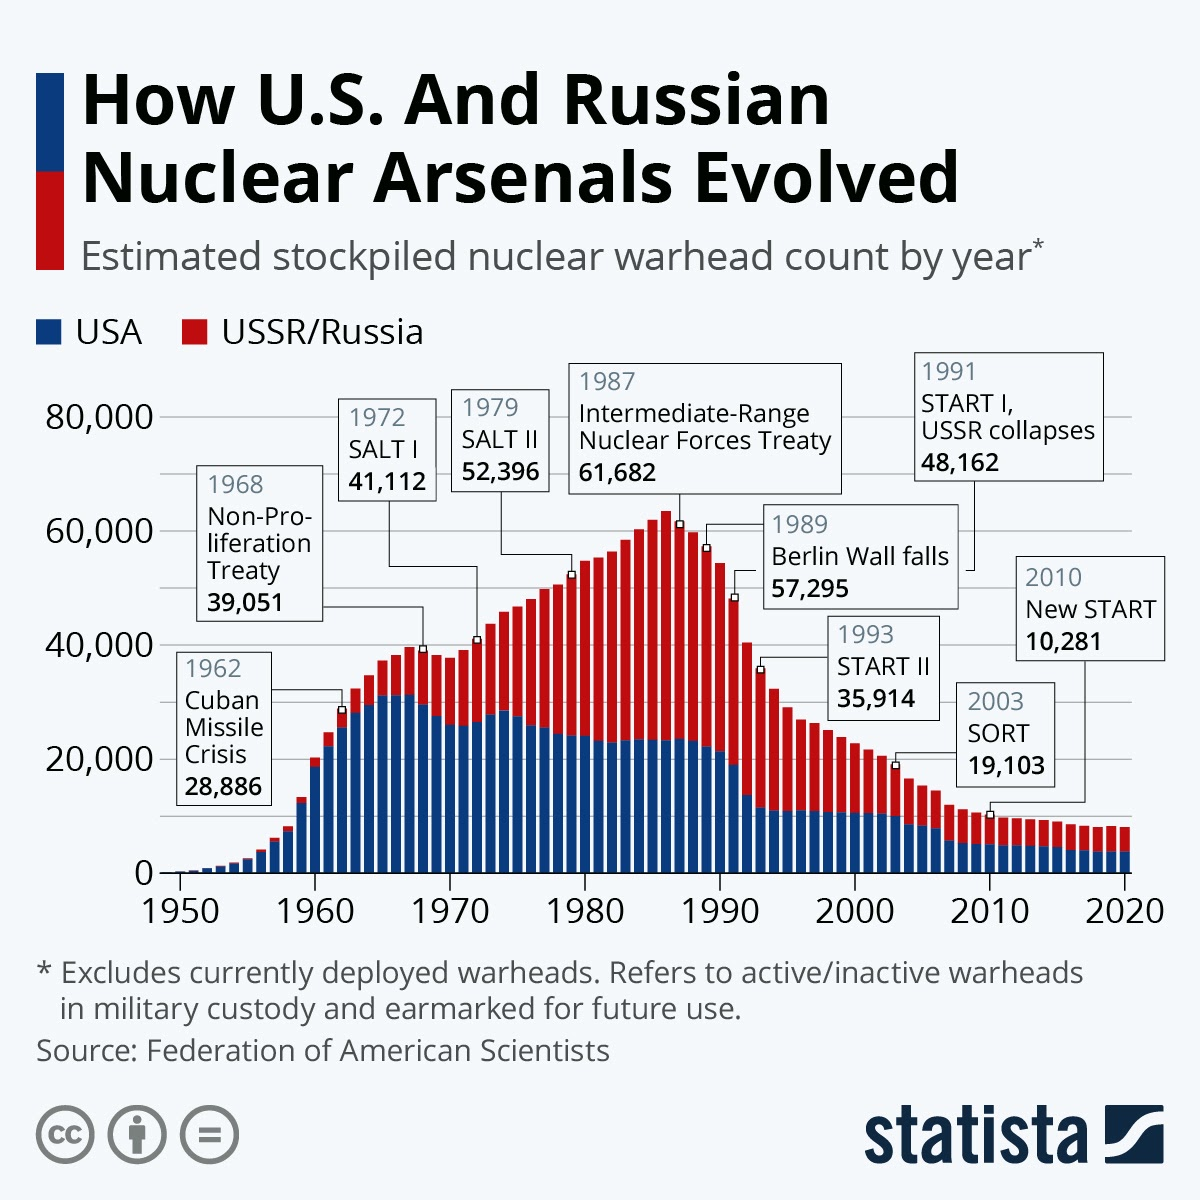 How U.S. And Russian Nuclear Arsenals Evolved #infographic